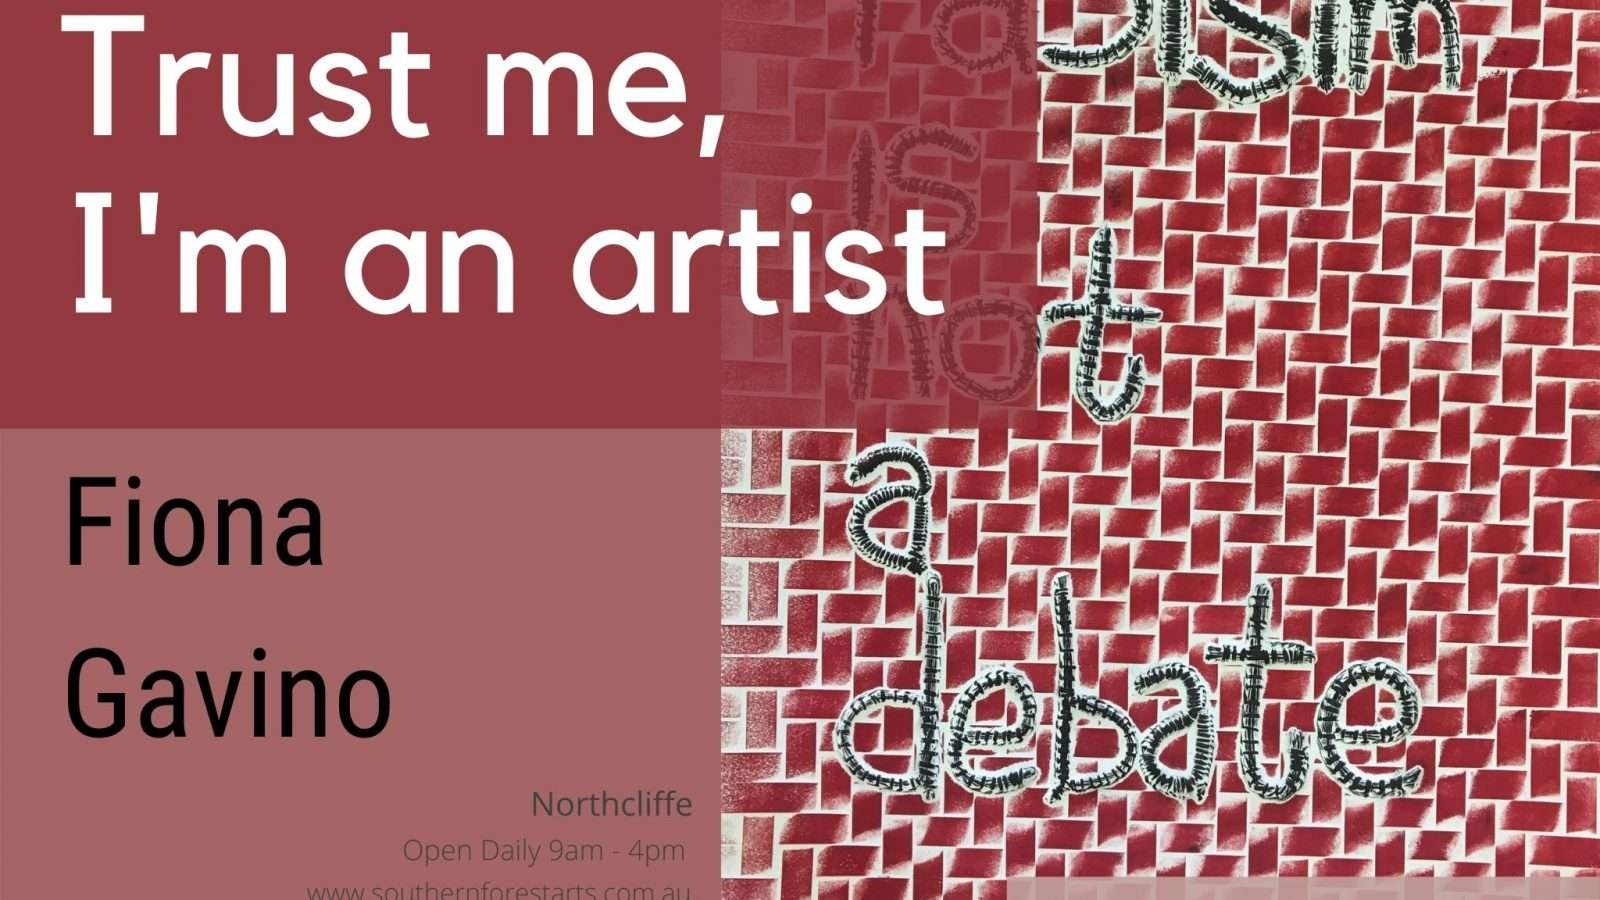 'Trust Me, I'm an Artist' Exhibition by Fiona Gavino at the Painted Tree Gallery, Northcliffe